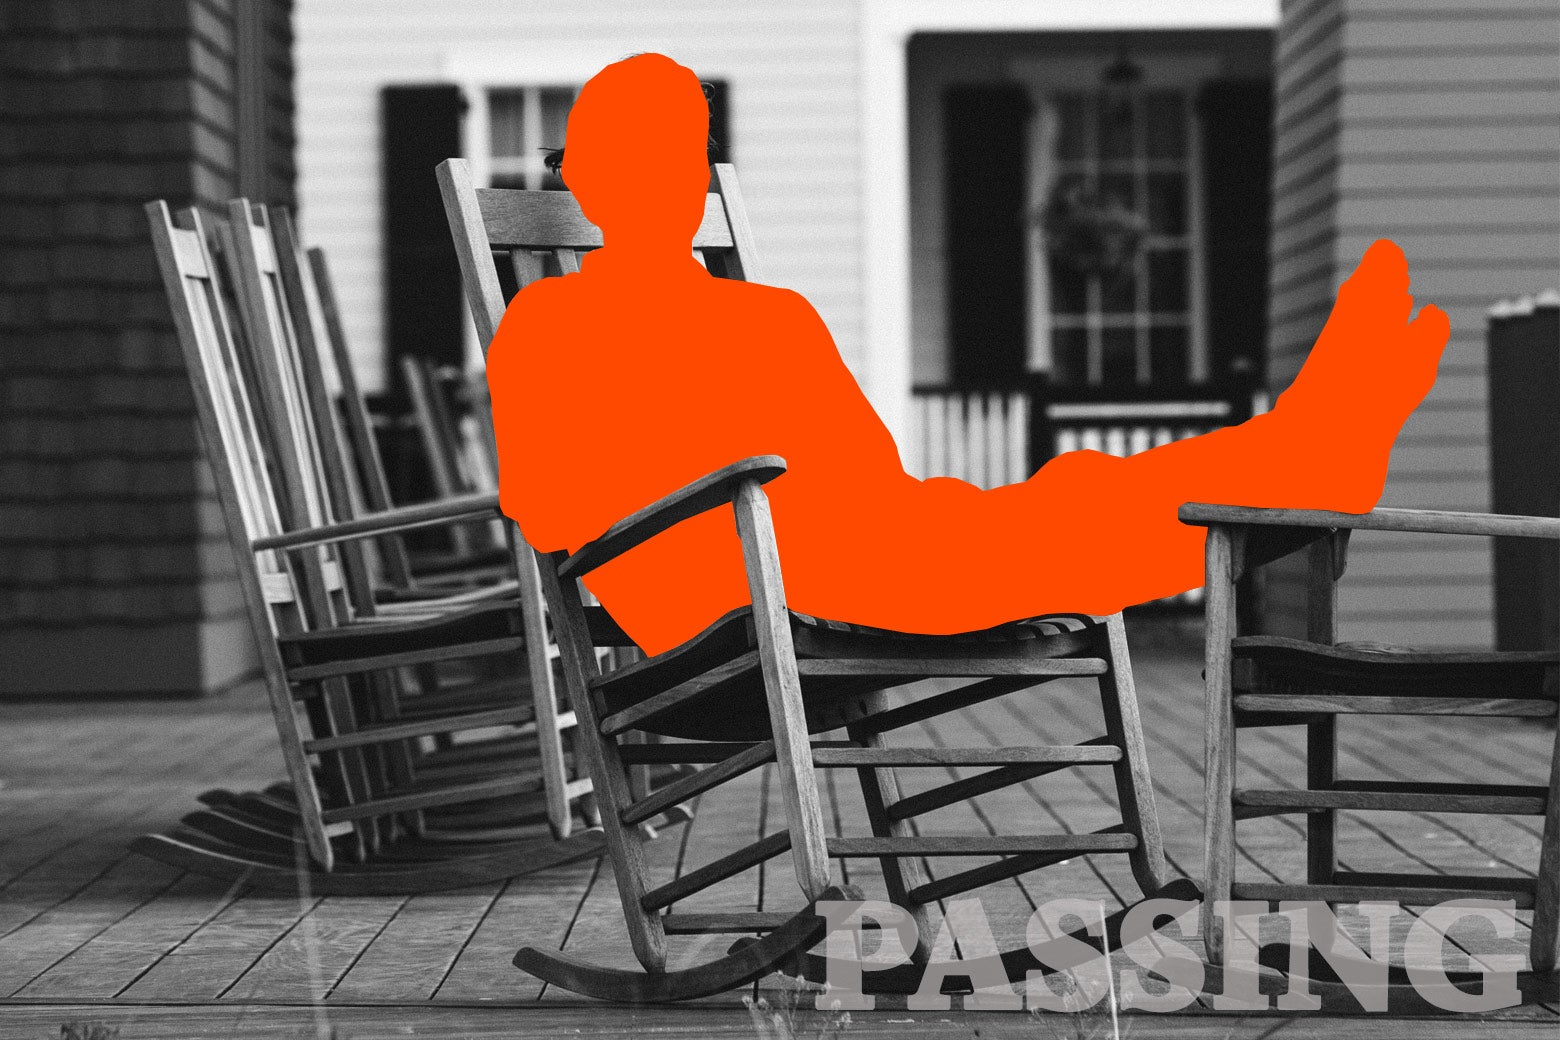 A man sitting on a rocking chair on a porch.